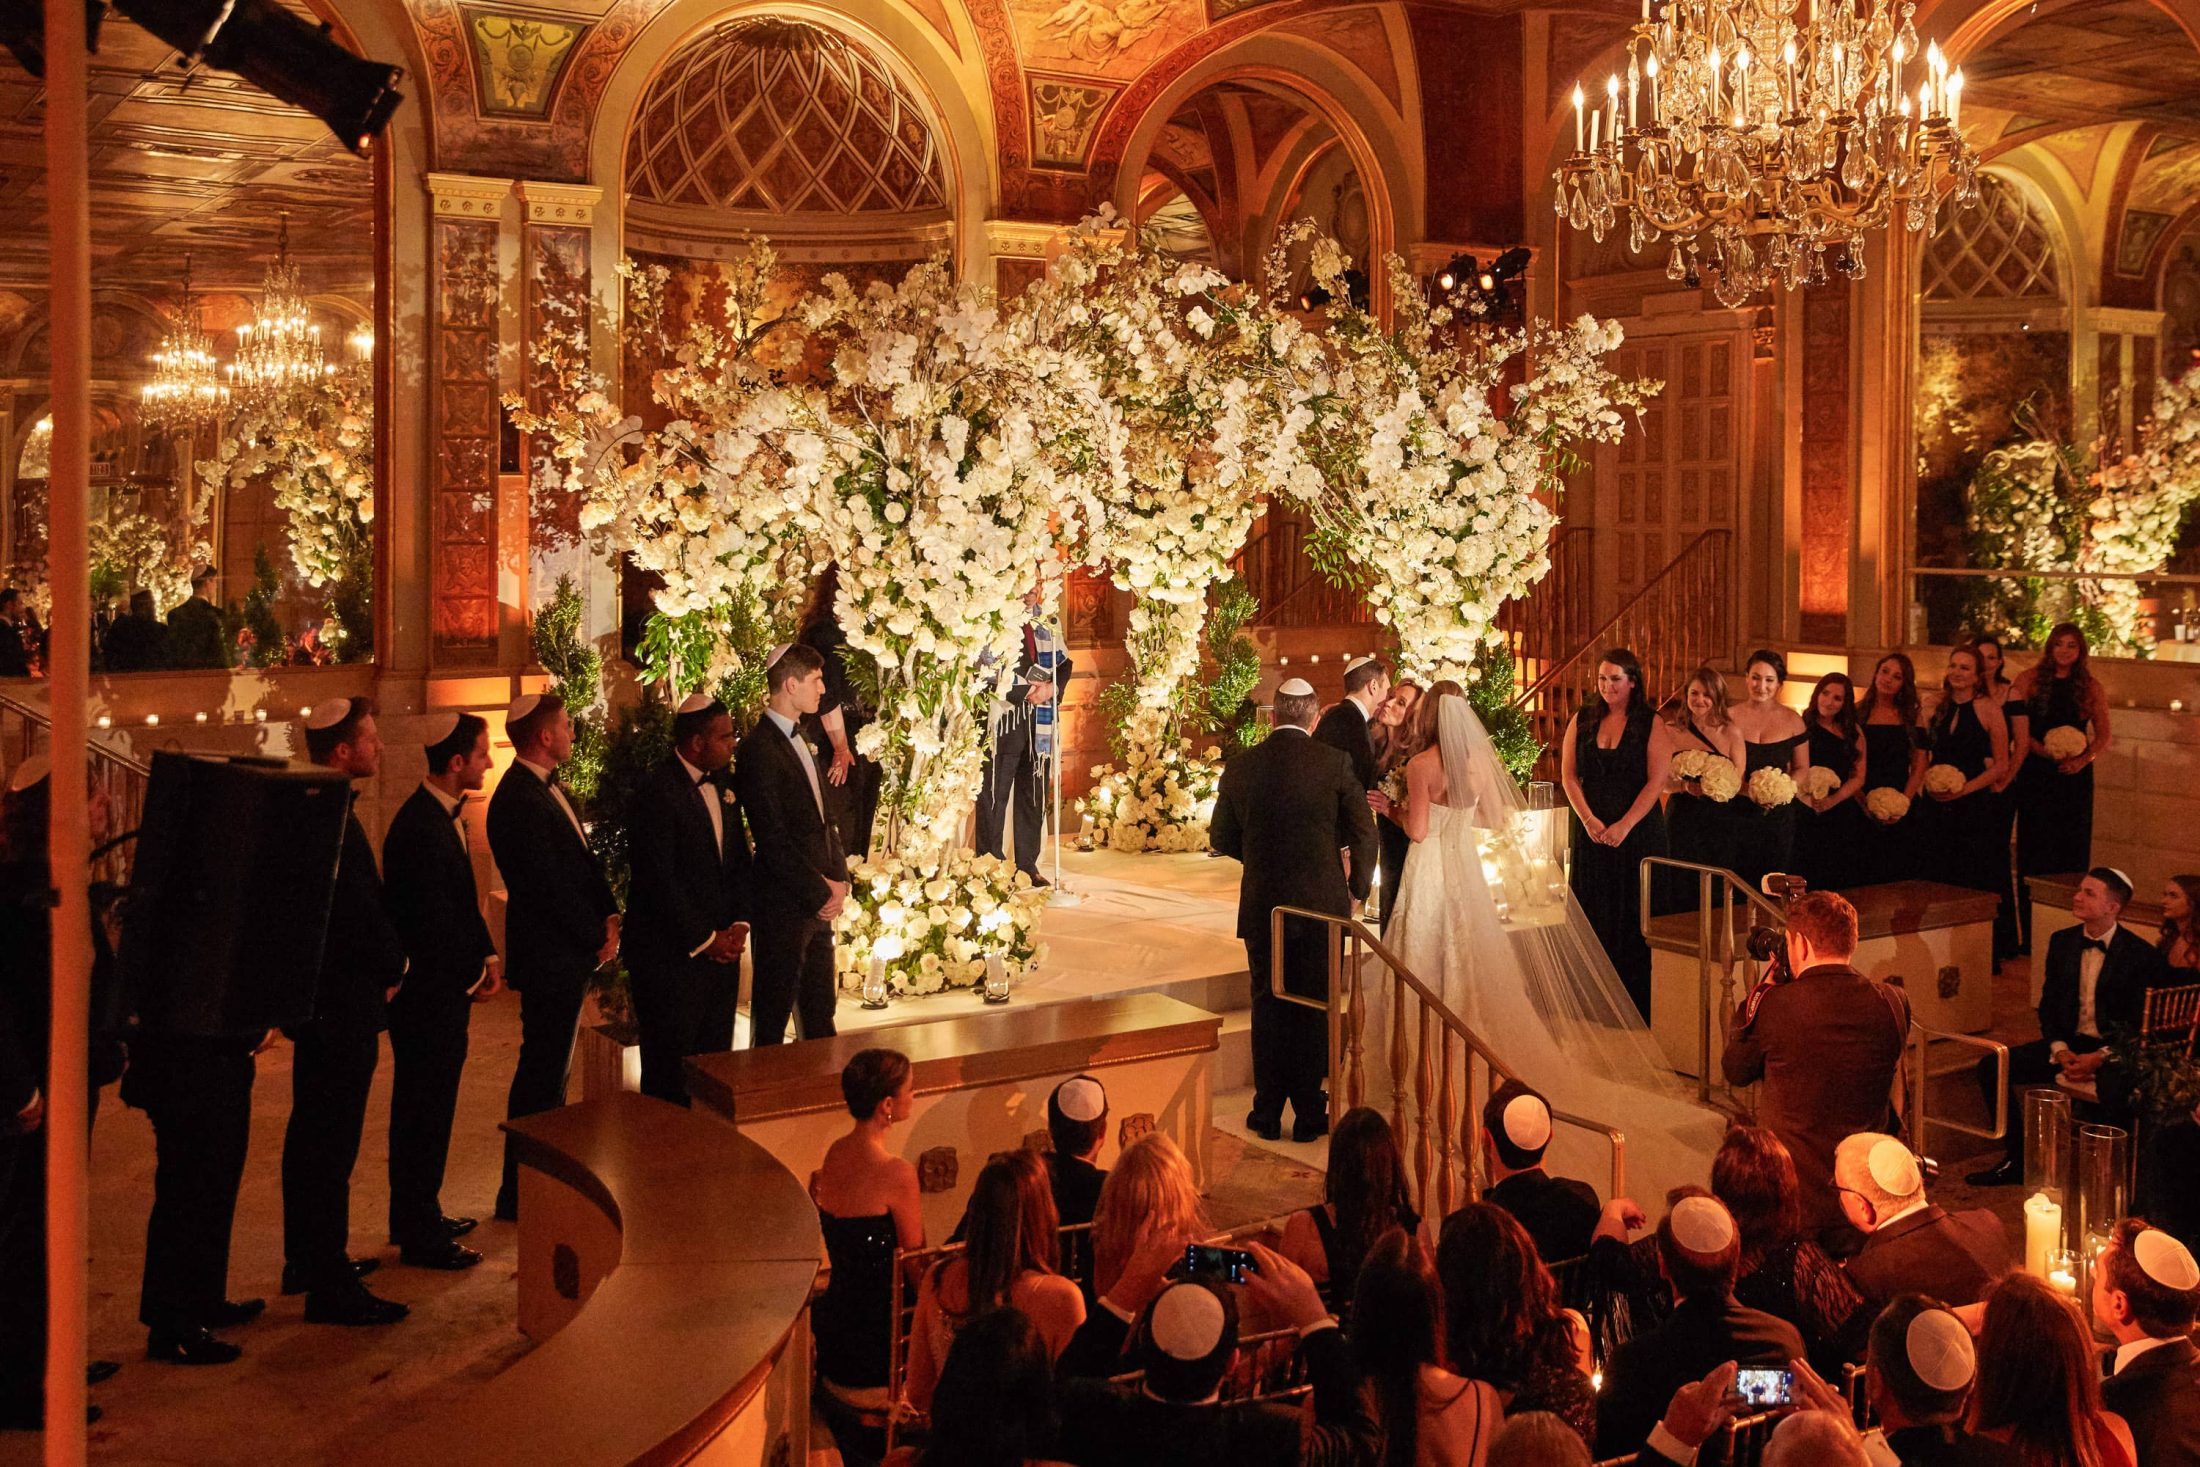 Bride and groom exchanging vows under gorgeous floral chuppah designed by Ed Libby at this classic autumn wedding at The Plaza in NYC | Photo by Christian Oth Studio